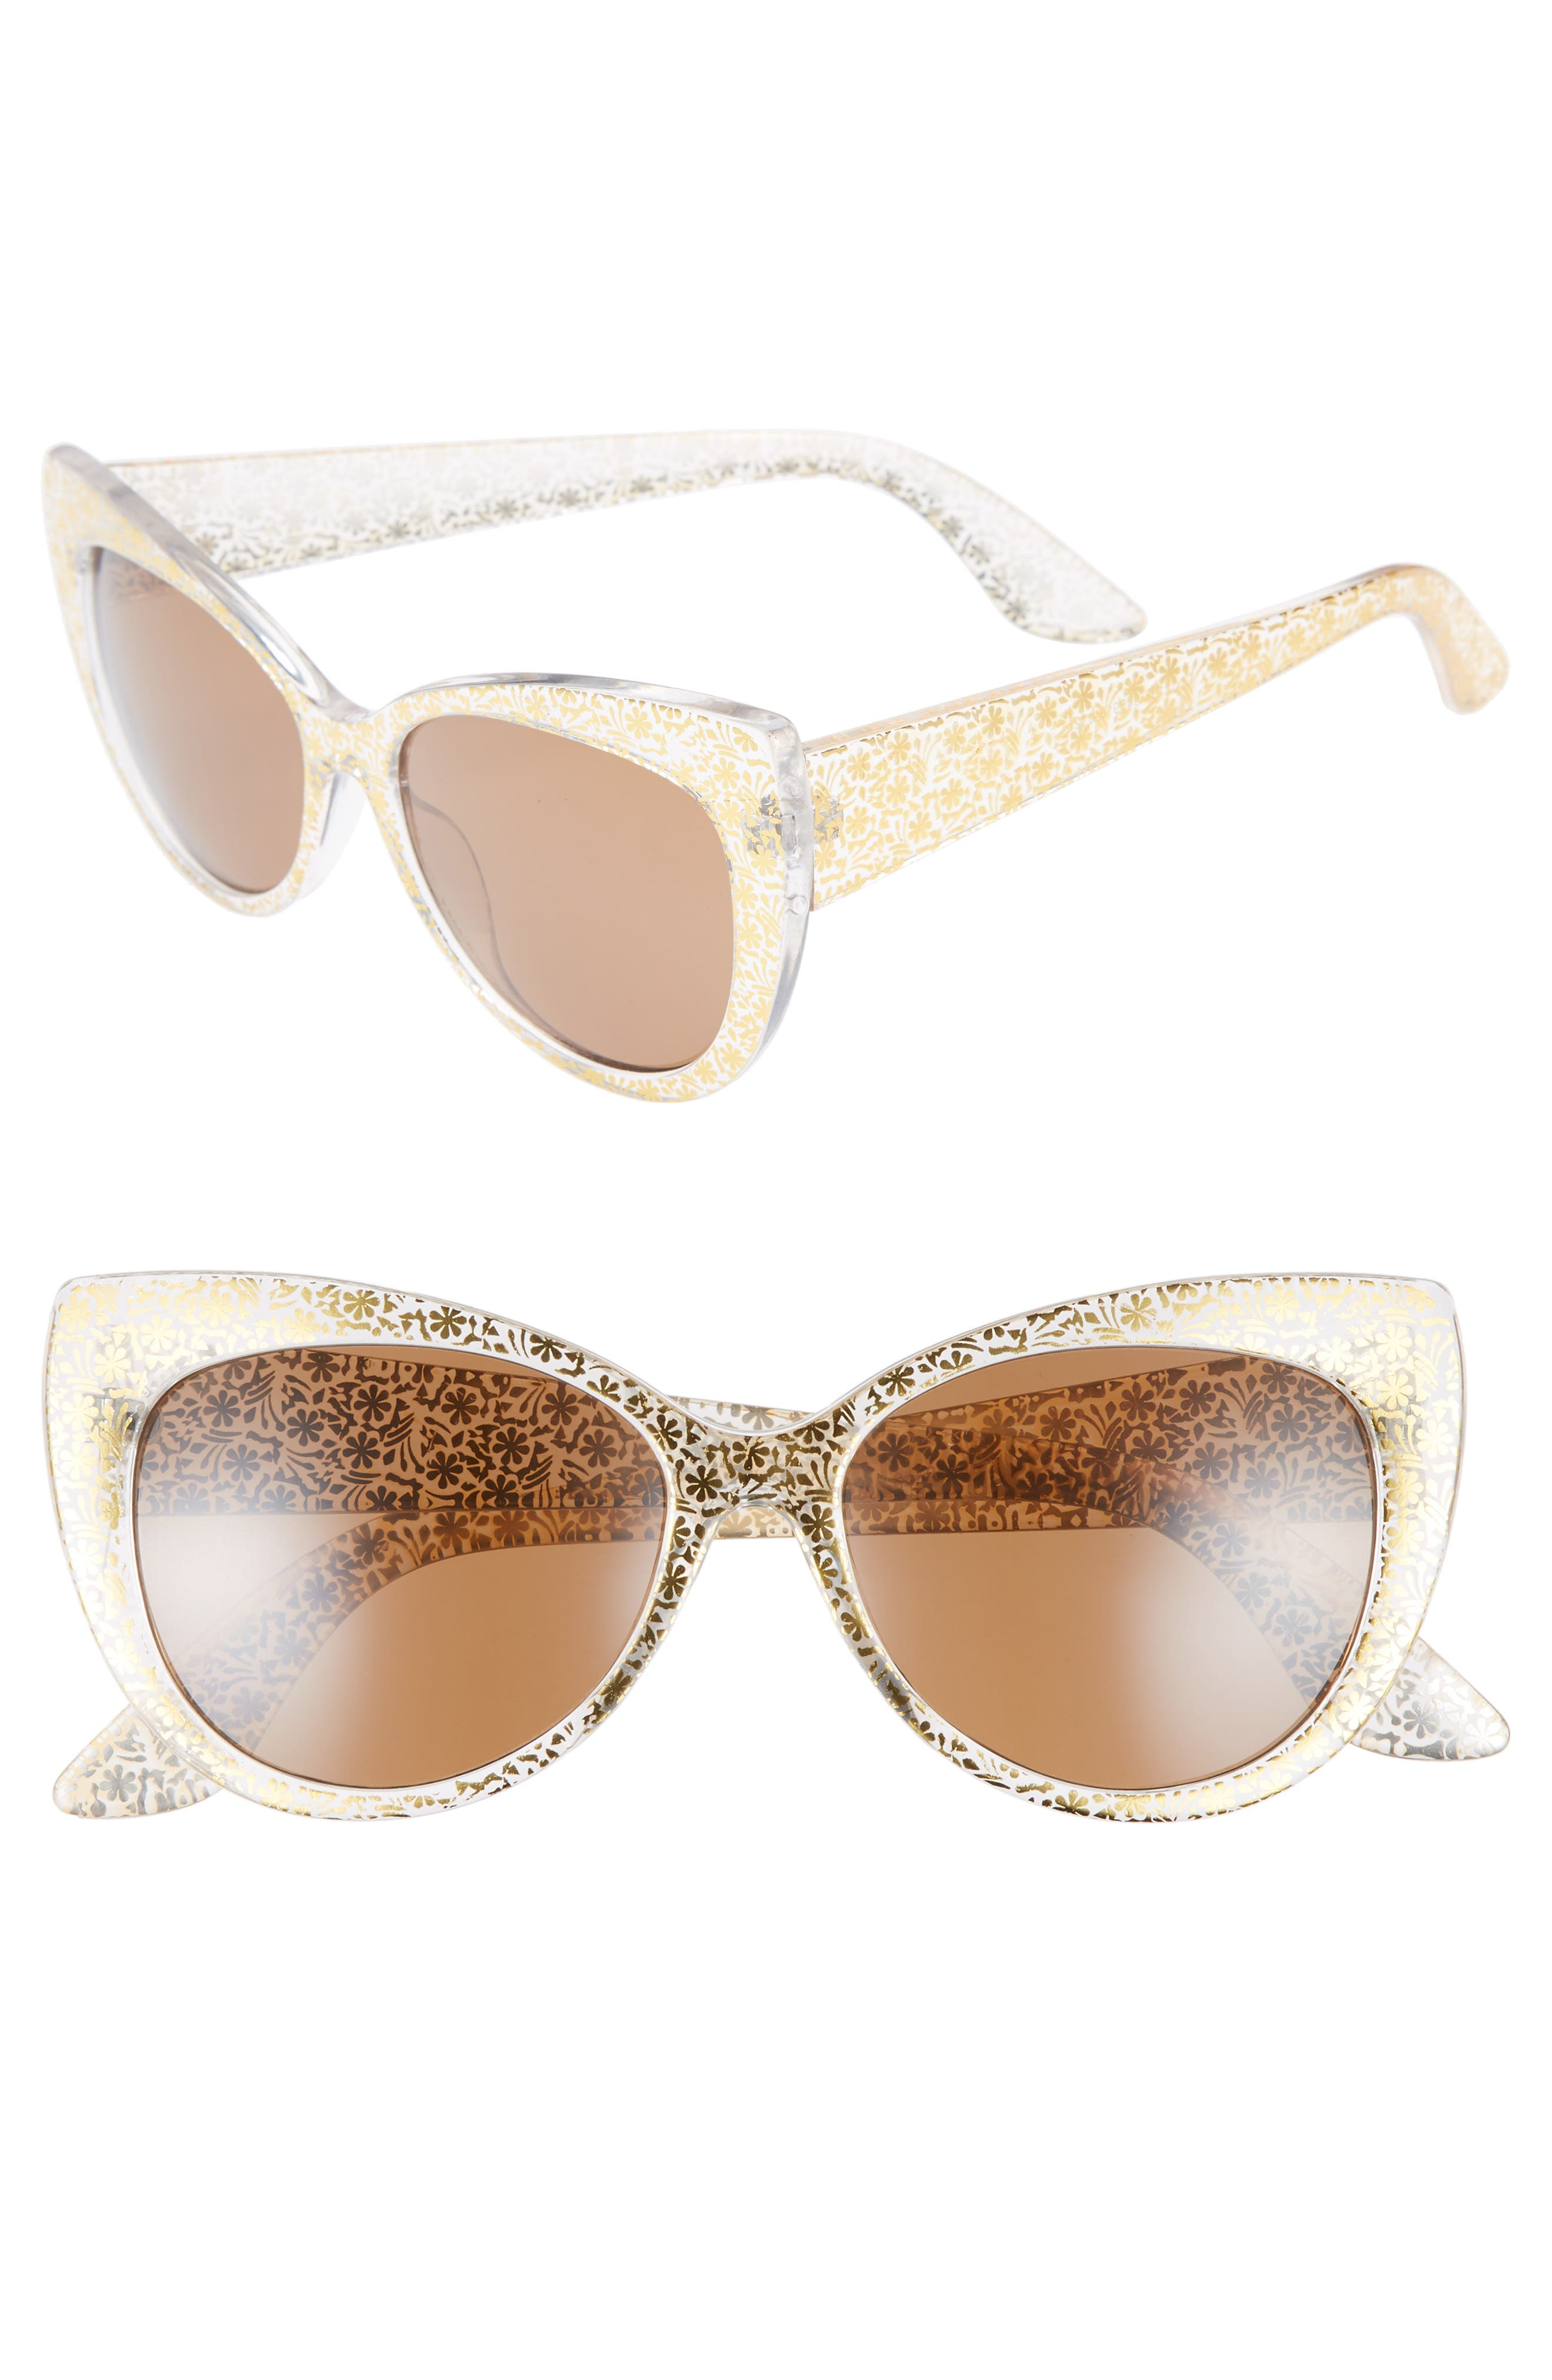 55mm Floral Cat Eye Sunglasses,                         Main,                         color, Gold/ Gold